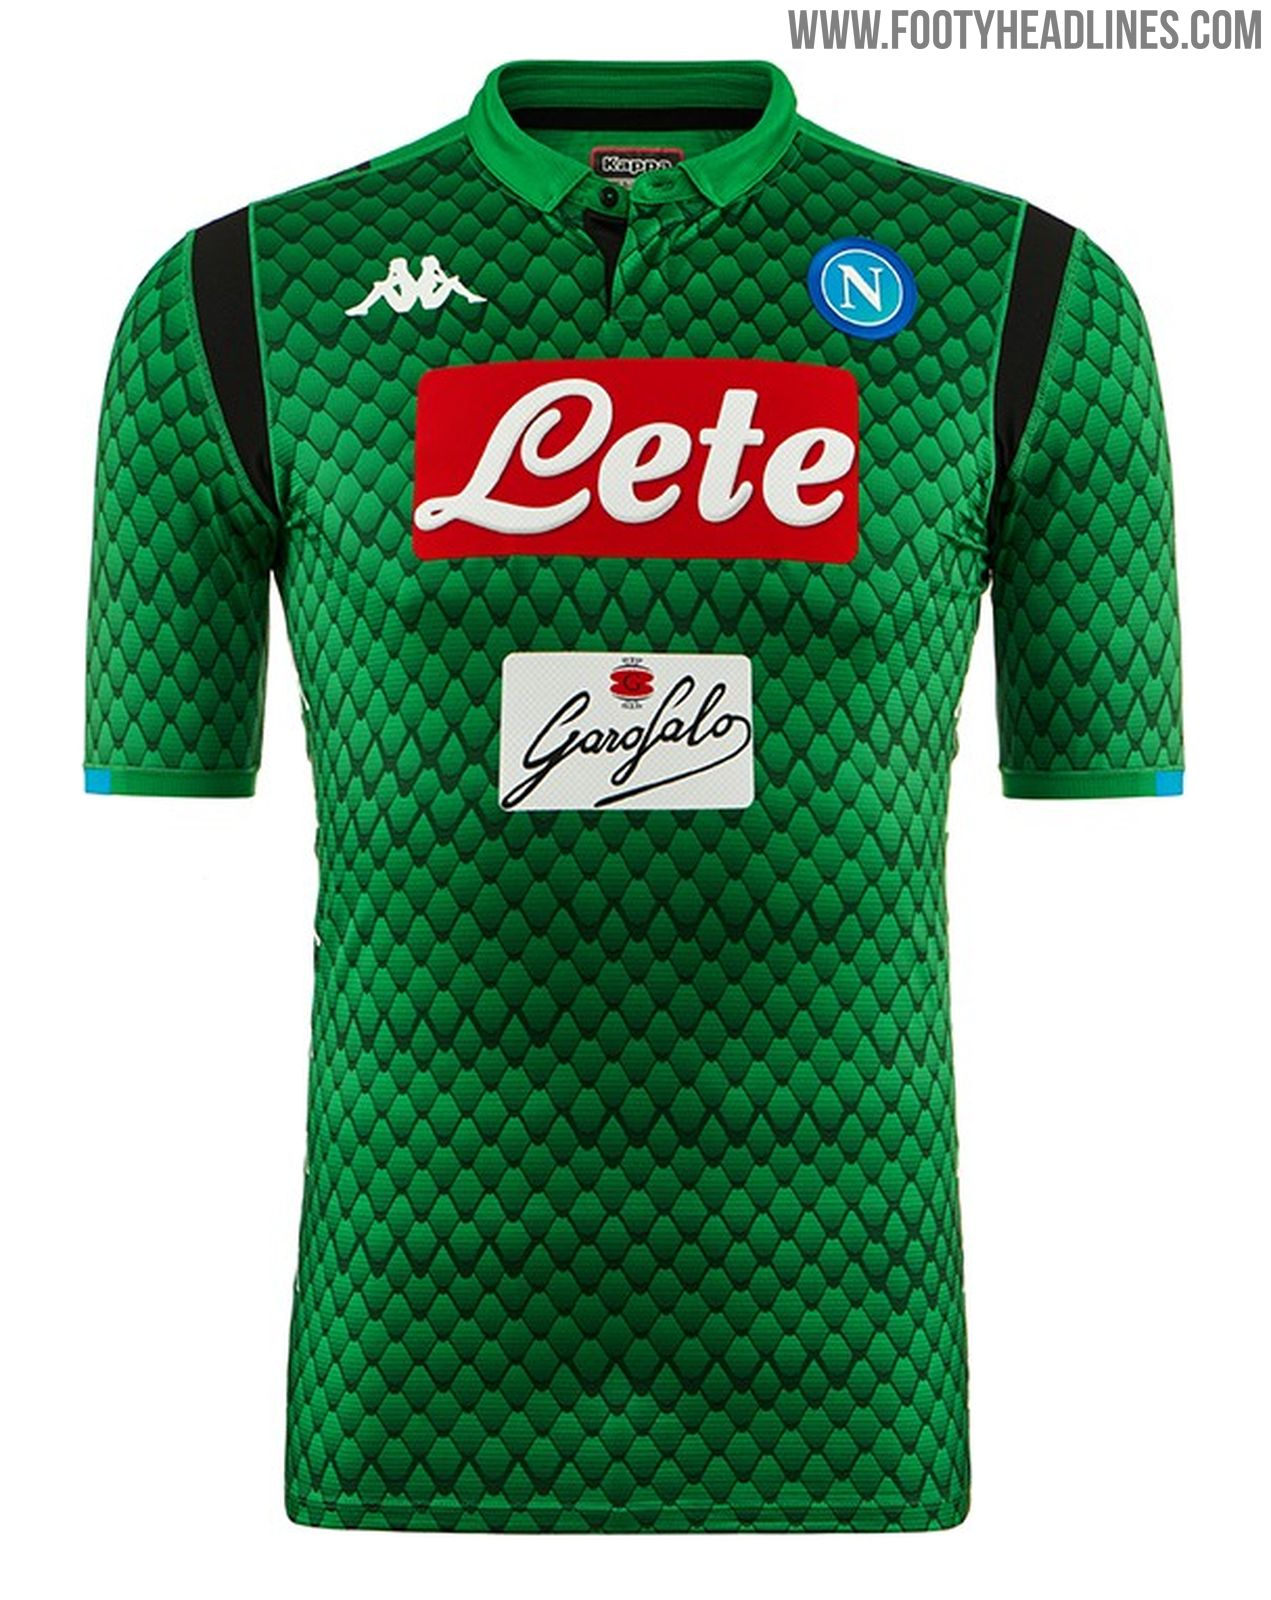 napoli-18-19-home-goalkeeper-kits-6.jpg